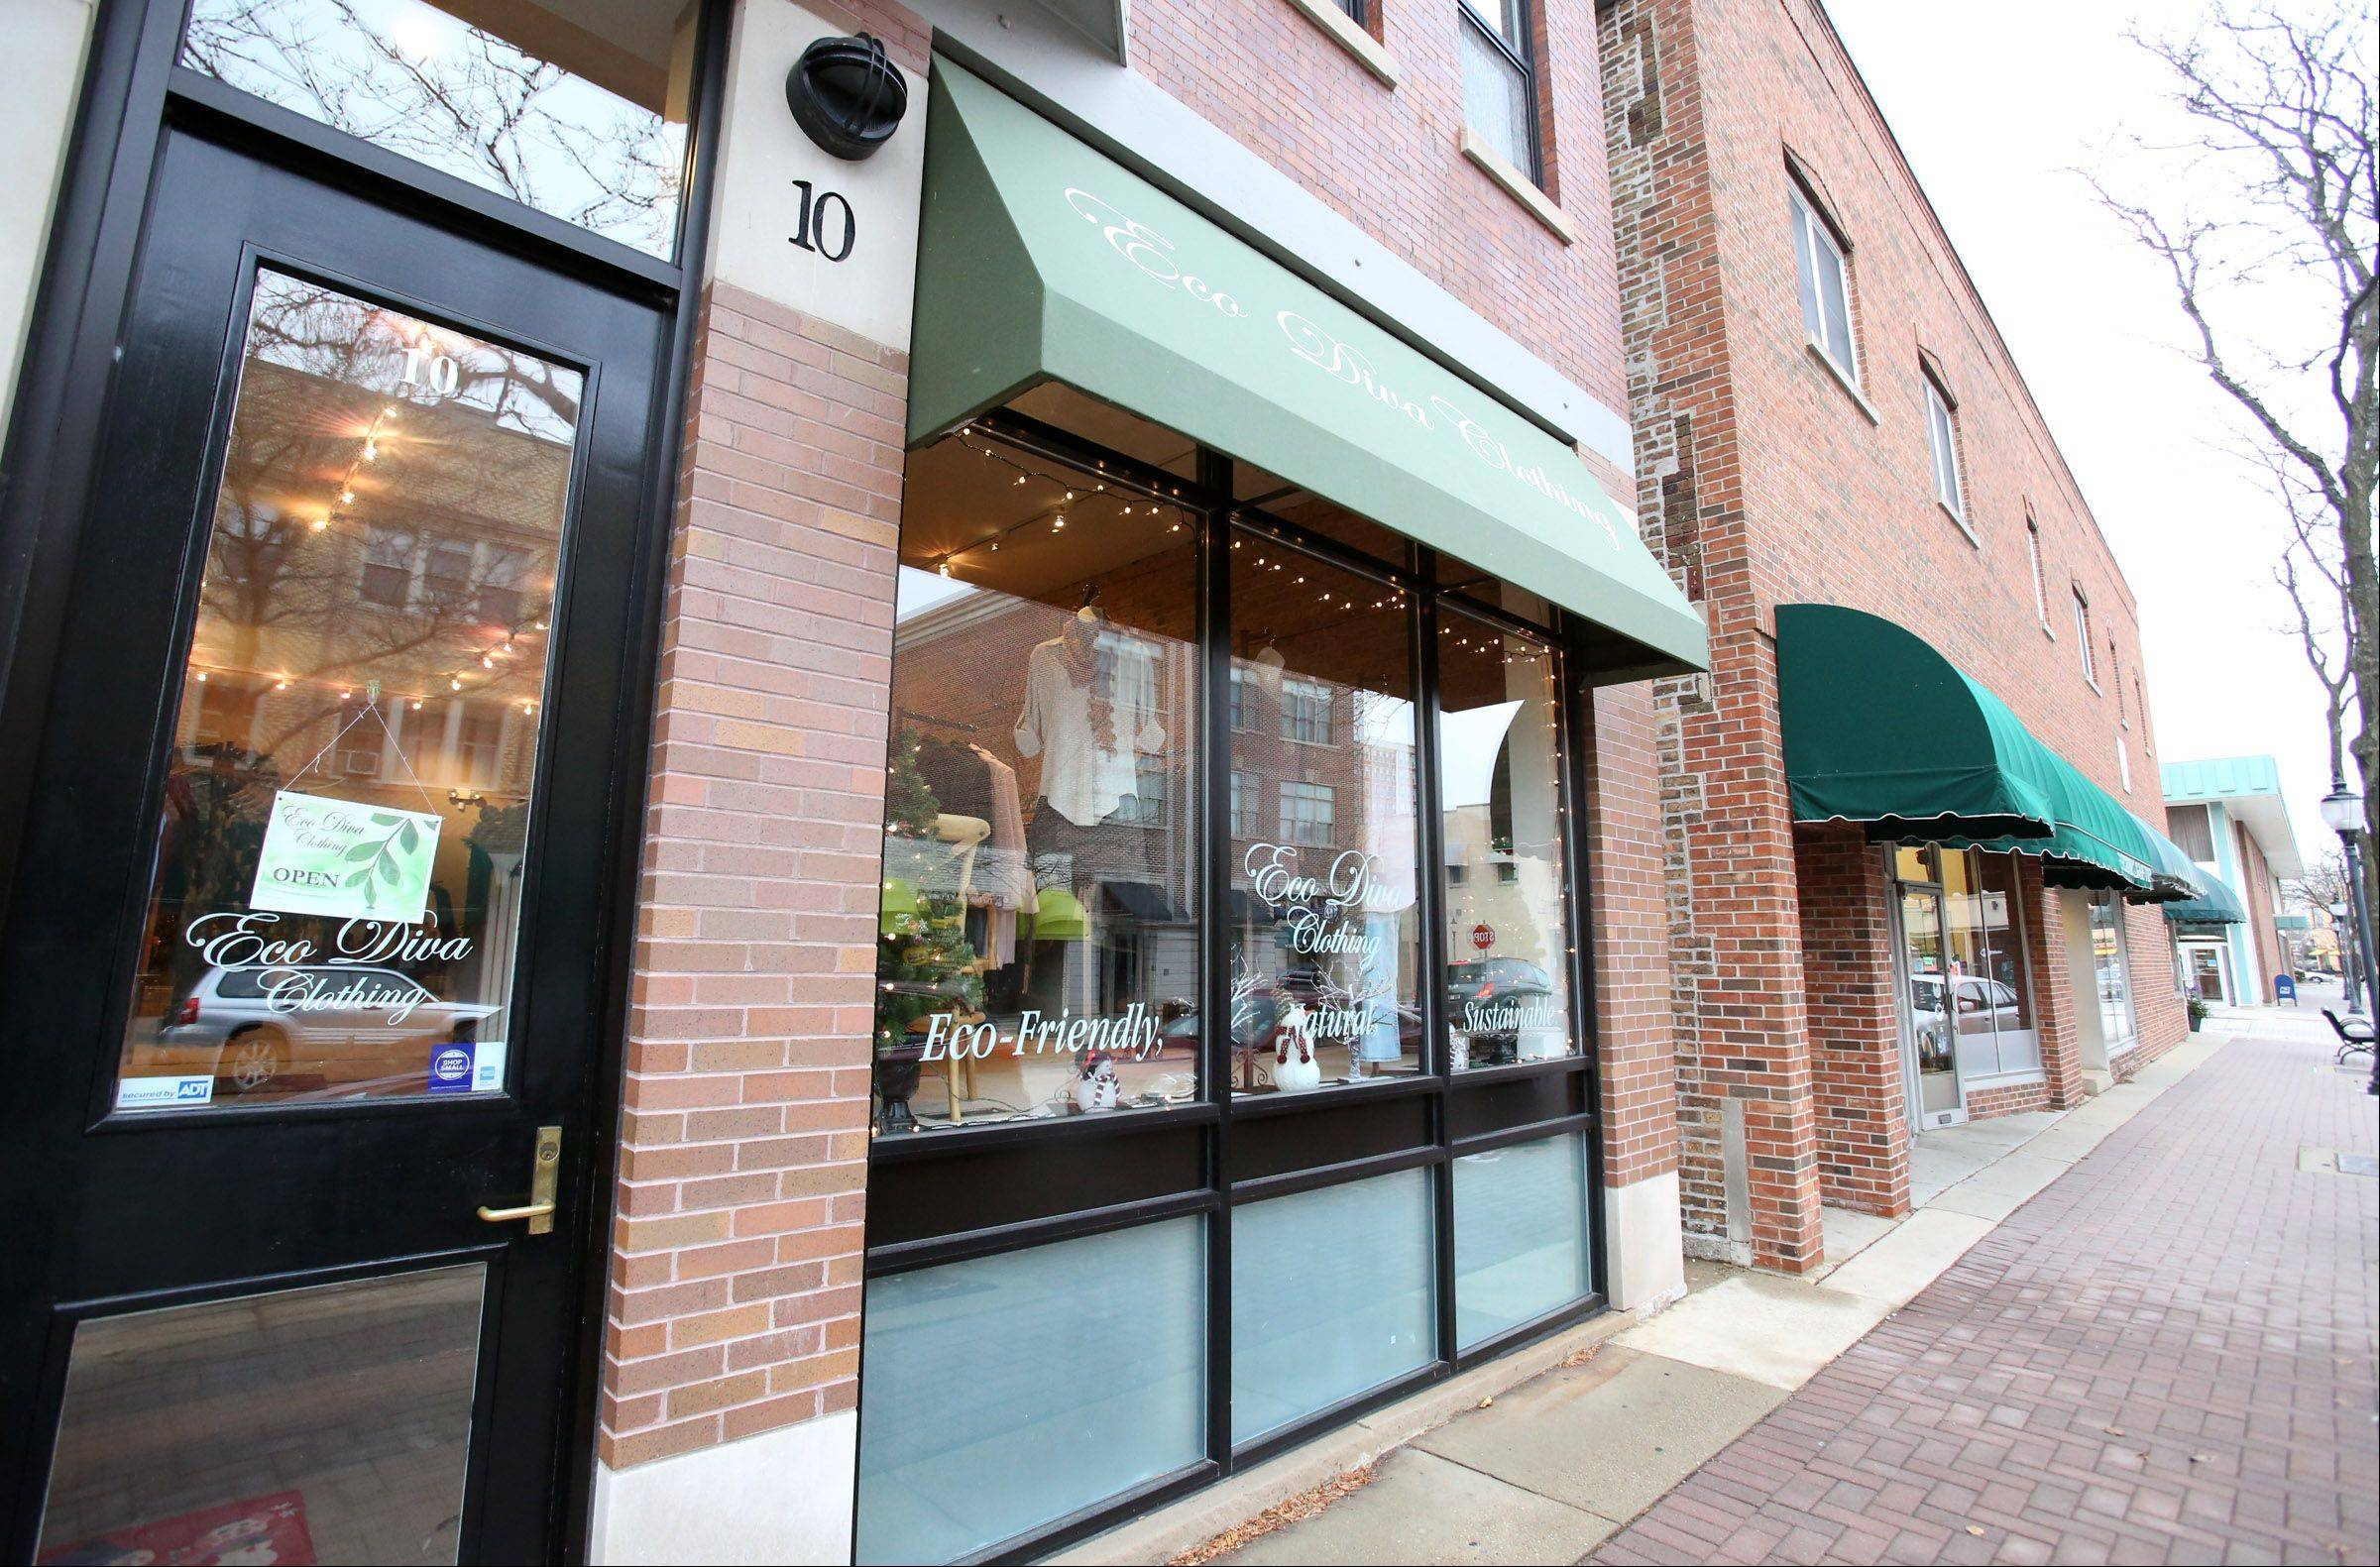 Eco Diva Clothing in downtown Arlington Heights will participate in Small Business Saturday, a special promotional day to highlight small, local companies.